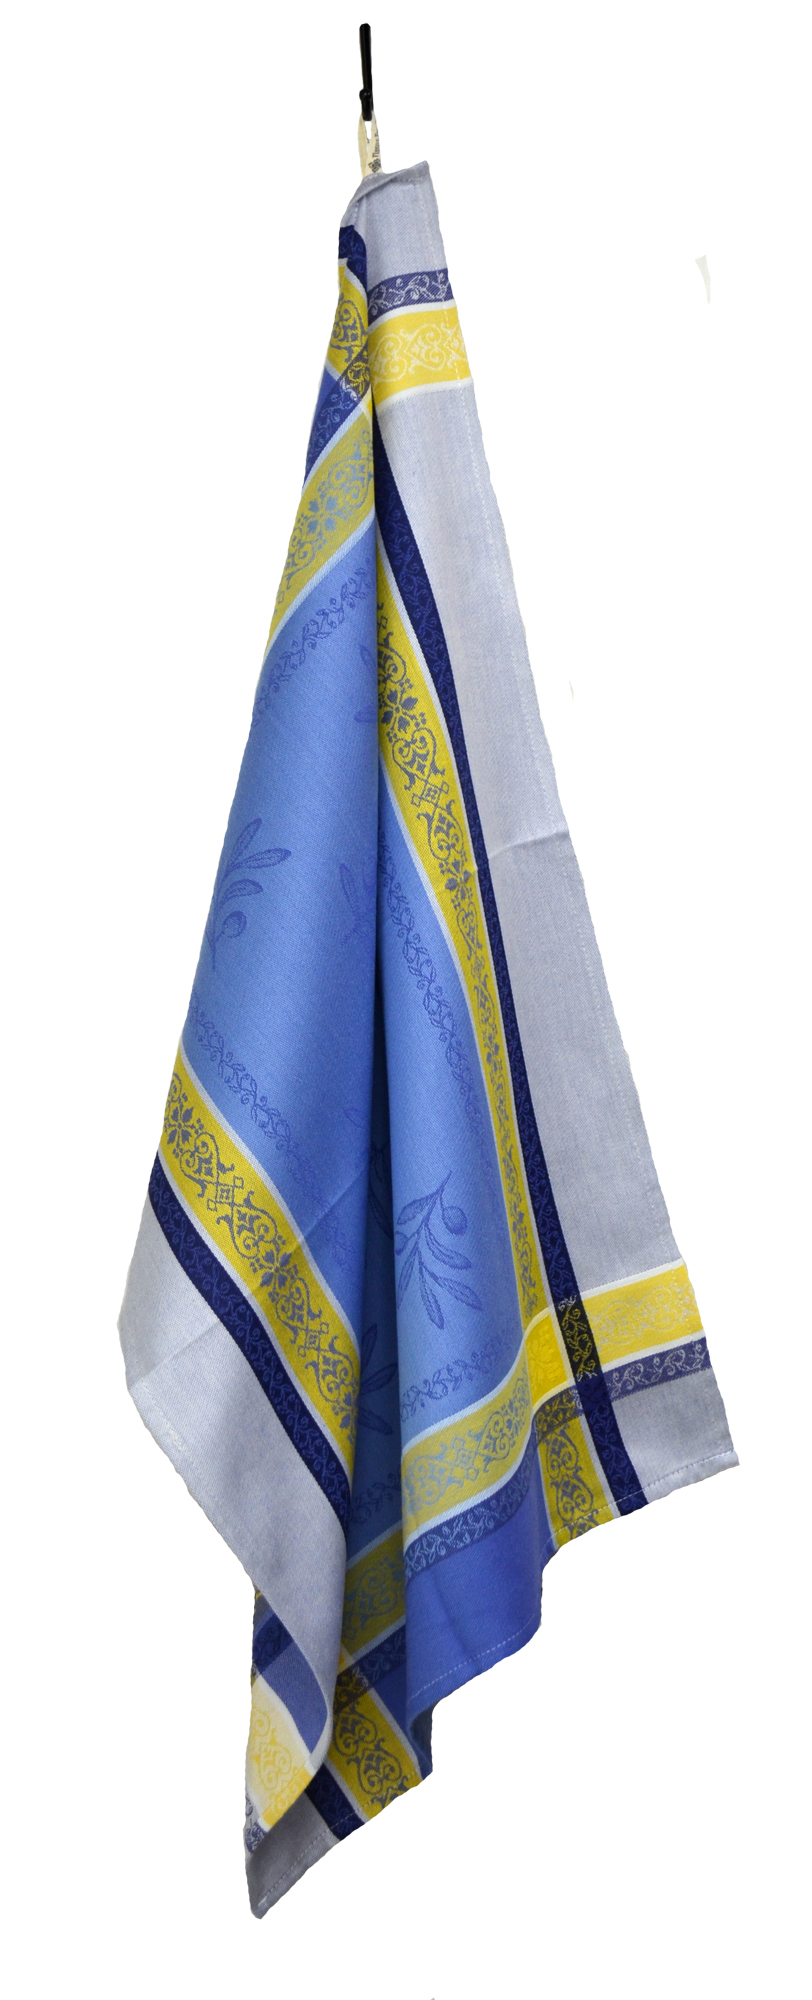 """Olives French Jacquard Tea Towel - Collection """"Olivia"""" Blue/Yellow, Size: 21 x 29 inches, Price CAN$19.95"""